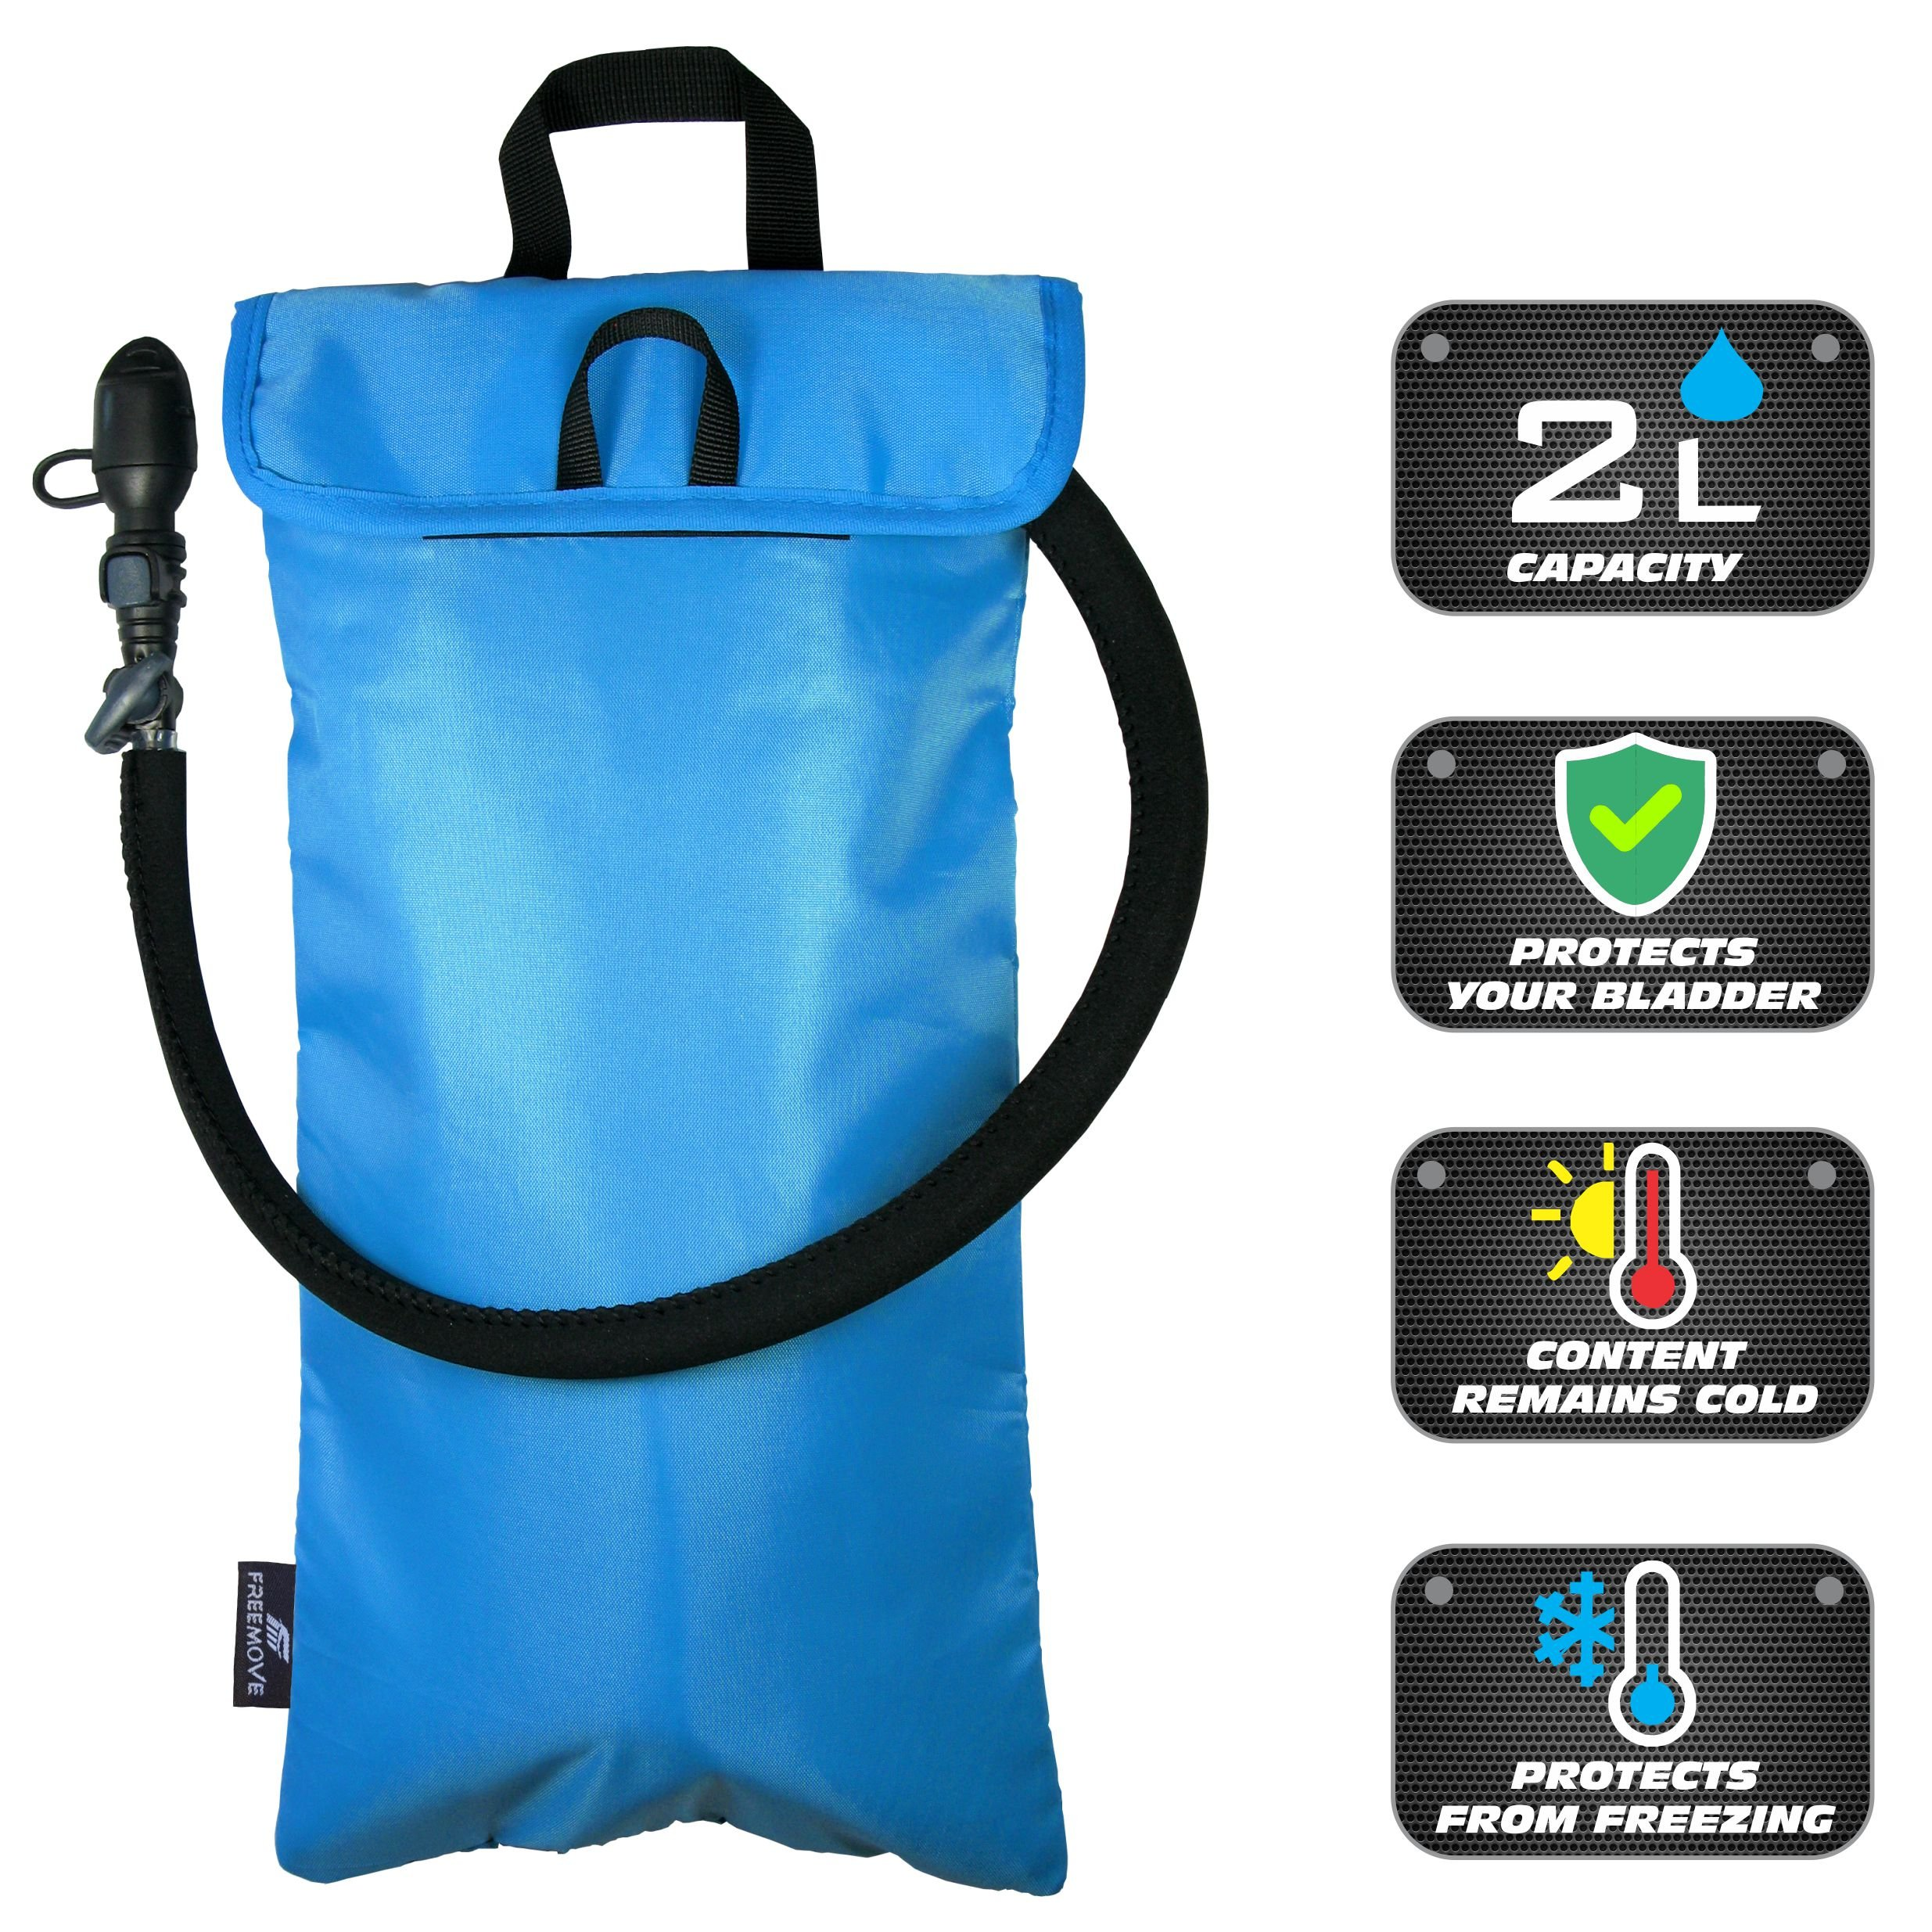 FREEMOVE Cooler Bag & Protective Sleeve 2in1 for Hydration Water Bladder up to 2L | KEEPS WATER COOL & PROTECTS YOUR BLADDER | Lightweight & Water Resistant | Fits to all - BLADDER IS NOT INCLUDED!